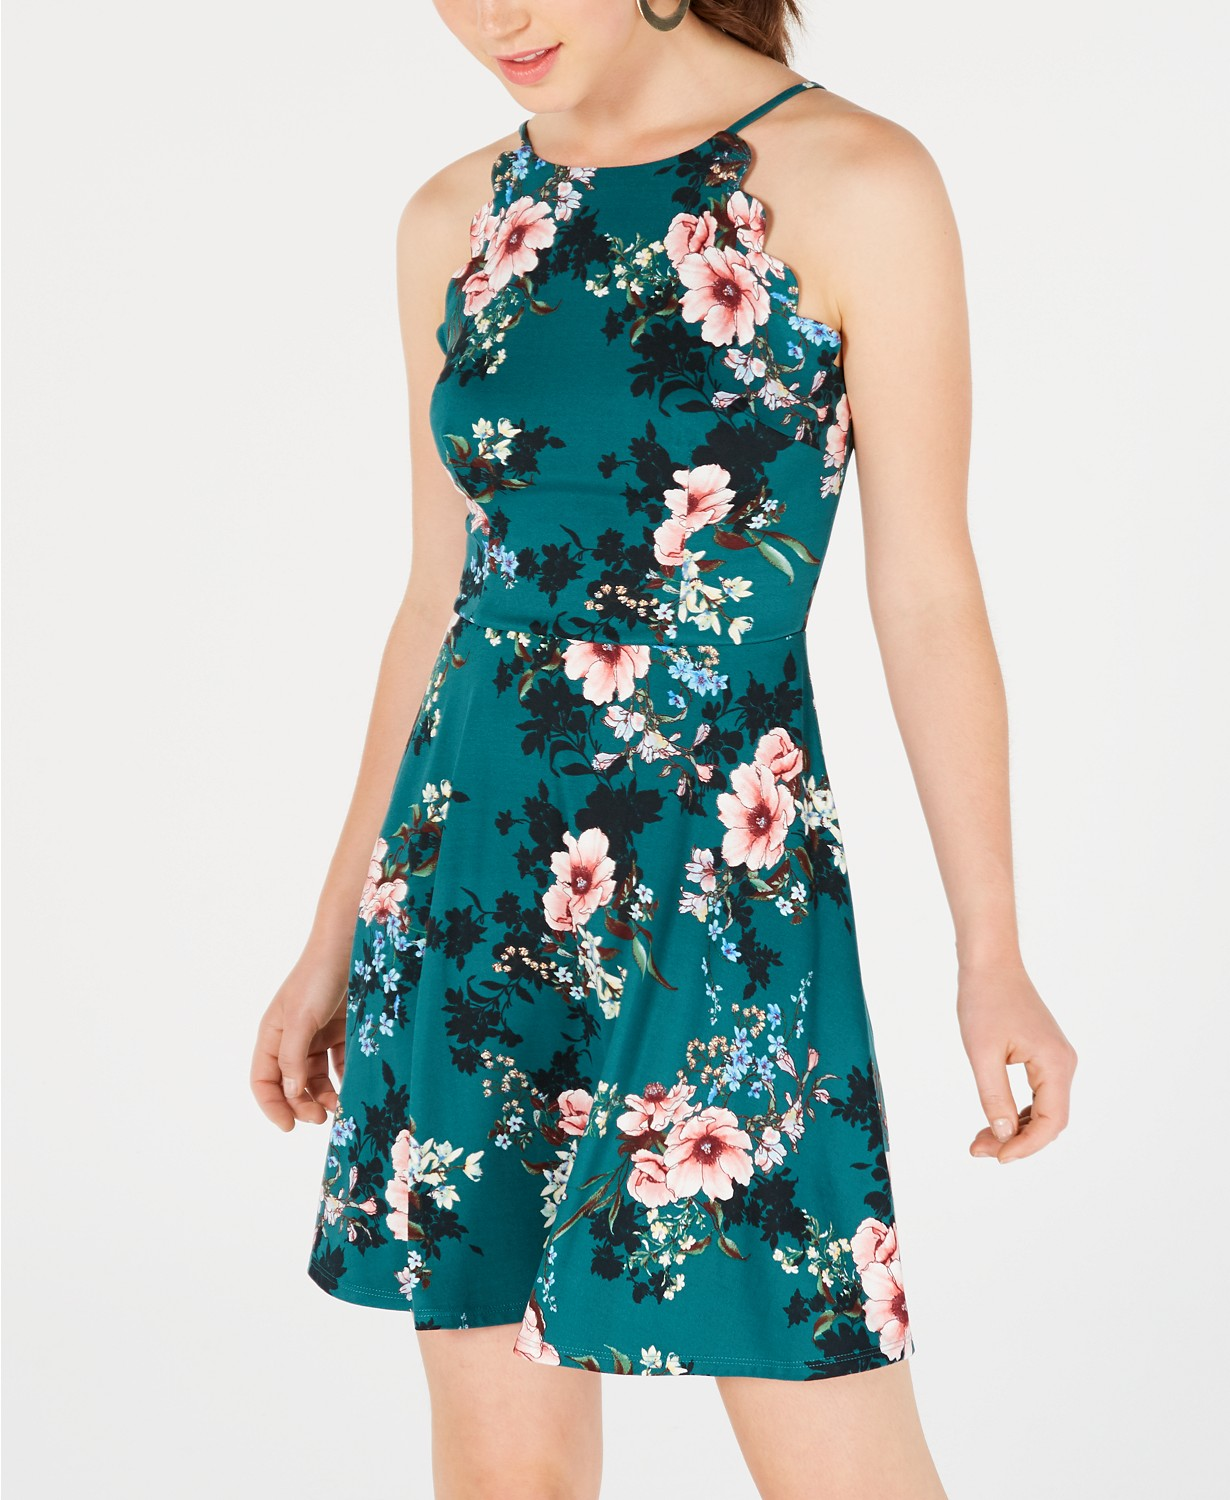 BCX Juniors' Floral-Print Scalloped Fit & Flare Dress